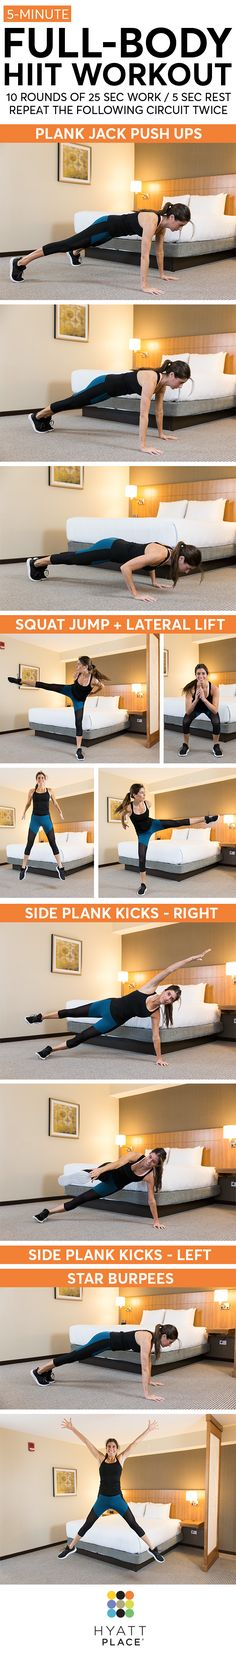 This full-body HIIT workout is perfect to do while traveling! No equipment is needed and it'll take you just 5 minutes. Looking for a longer workout? Repeat the circuit!